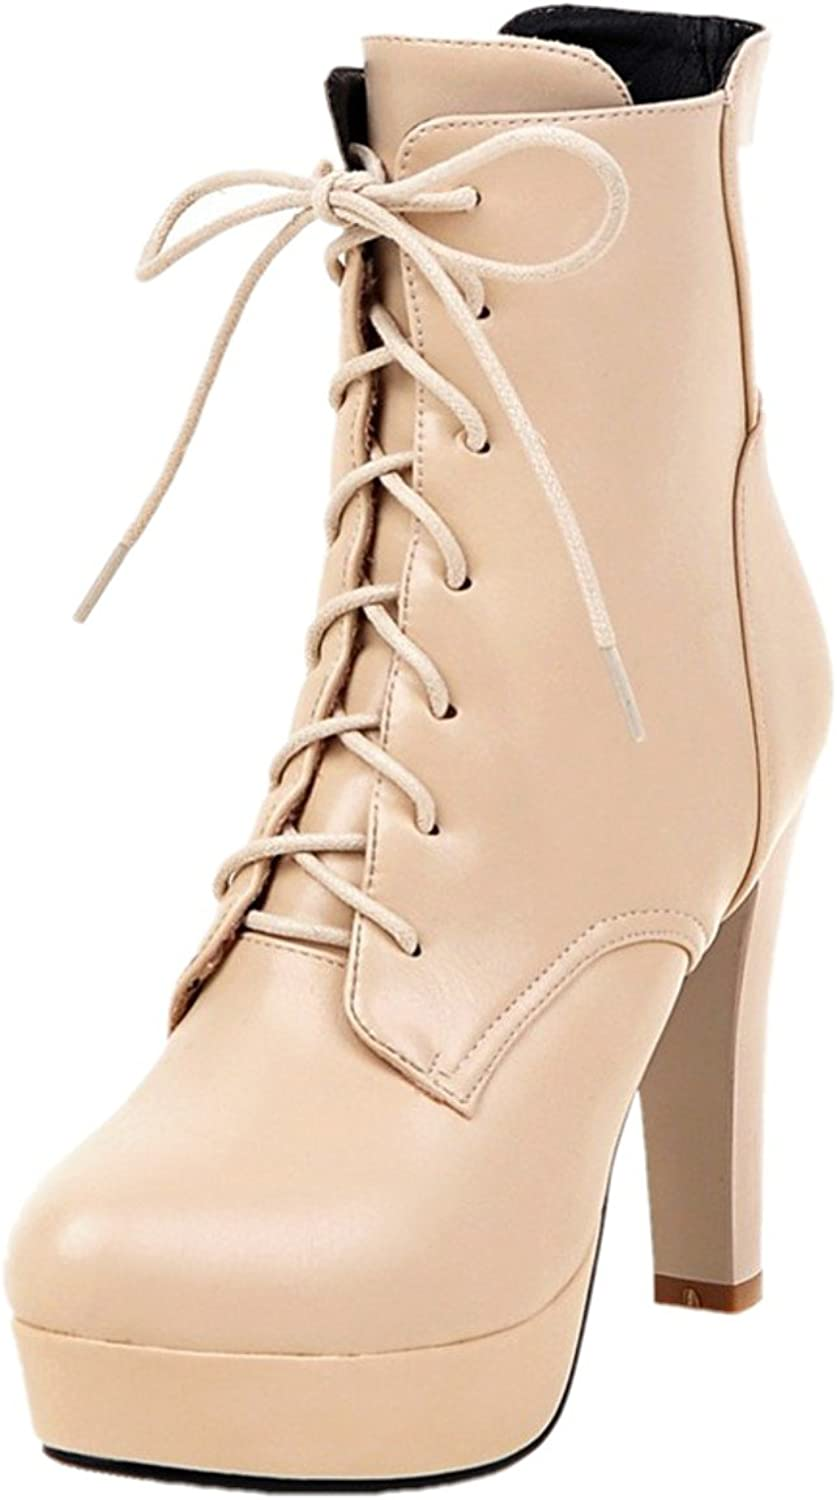 Rongzhi Womens Ankle Boots Platform Thick High Heels Round Toe Lace Up Pumps Party Dress Prom Booties